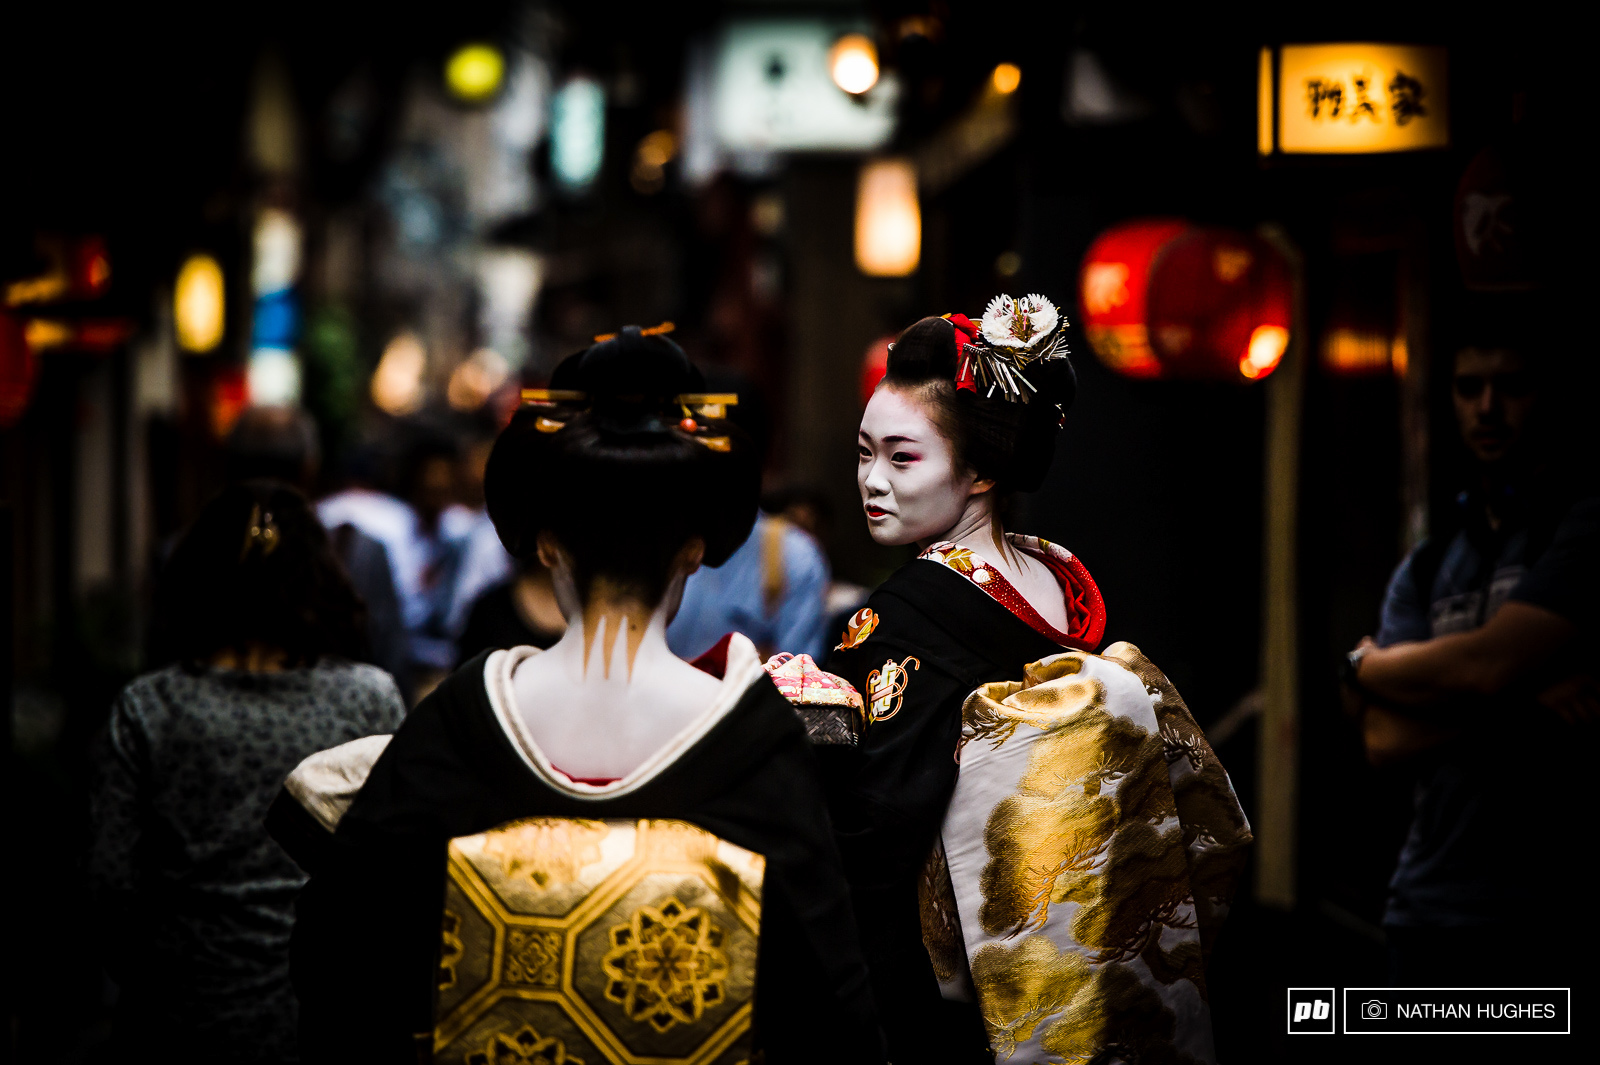 Authentic Geisha s headed to work at Pontocho alley in Kyoto.